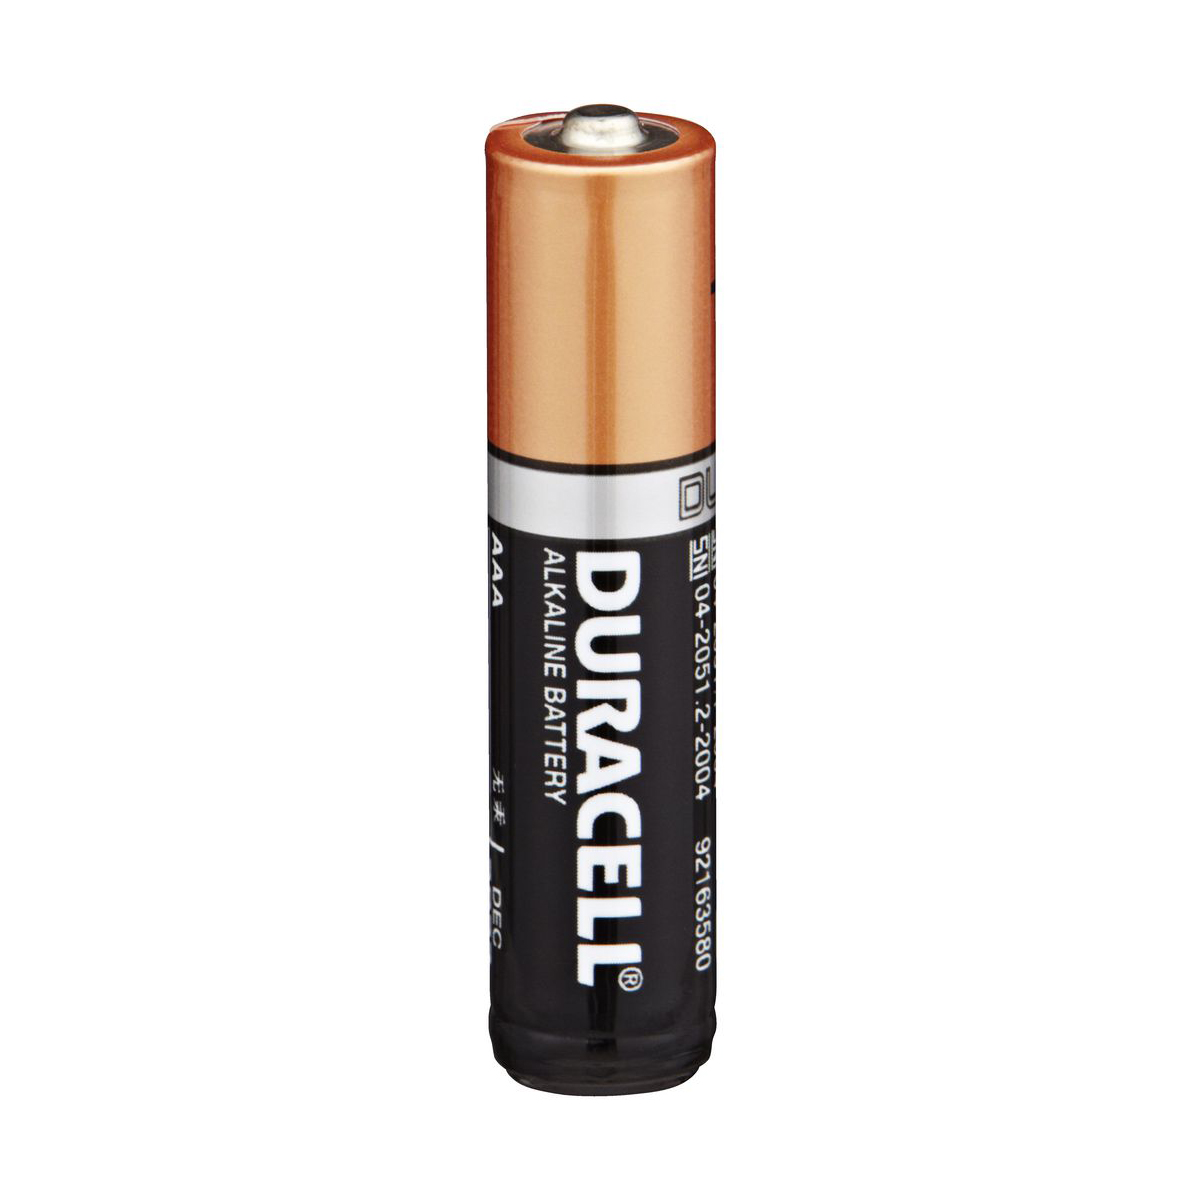 Game on closeouts sporting goods - Batteries Chargers